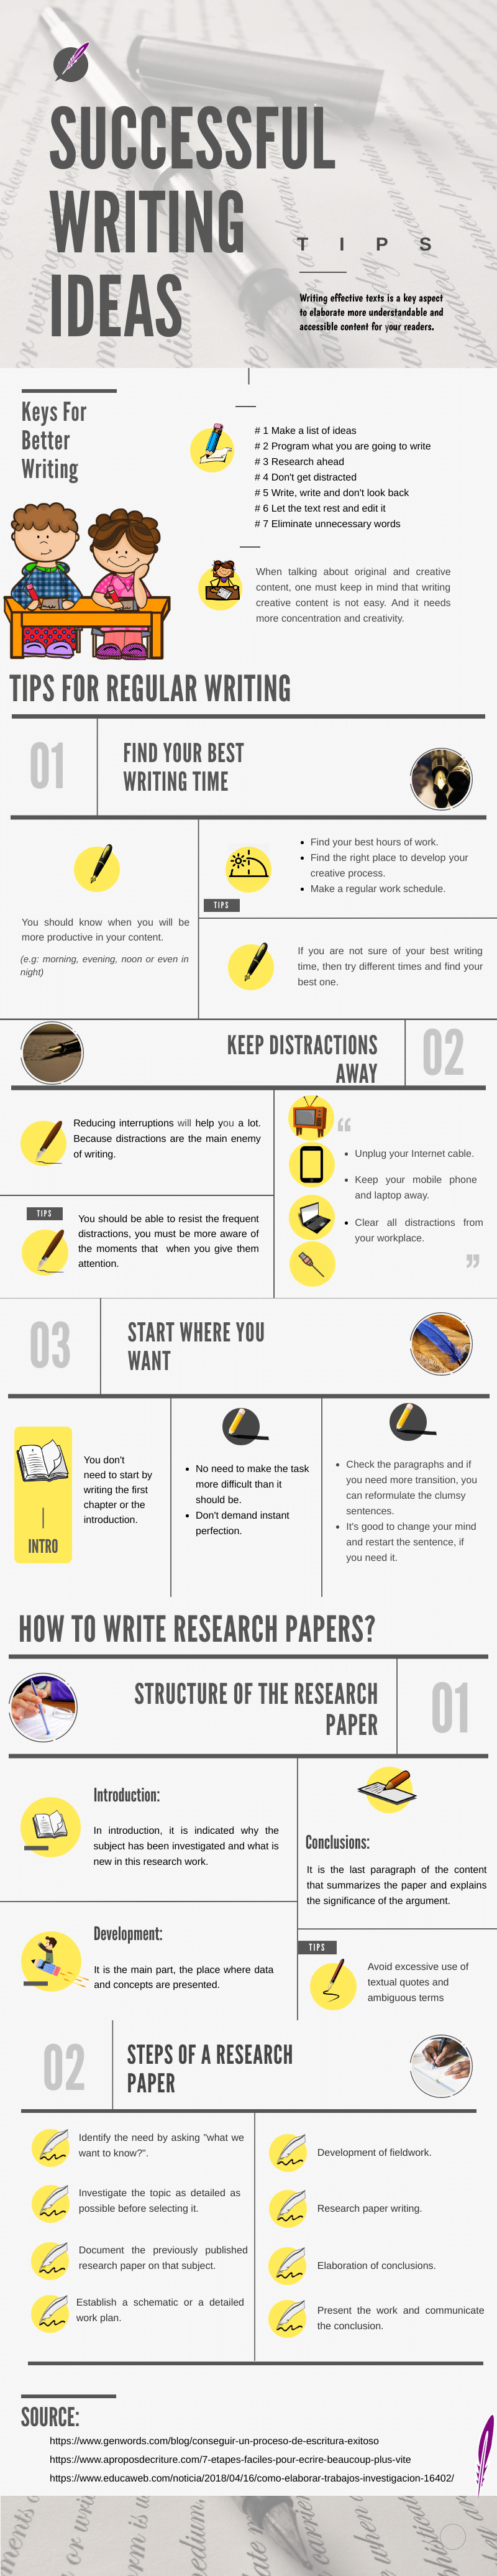 Successful writing ideas - infographic